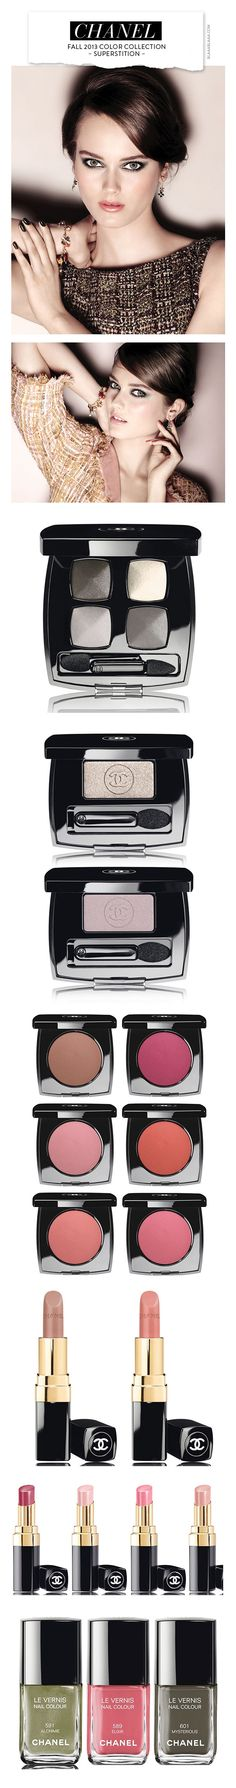 ~Chanel Fall 2013 Color Collection – Superstition | House of Beccaria#